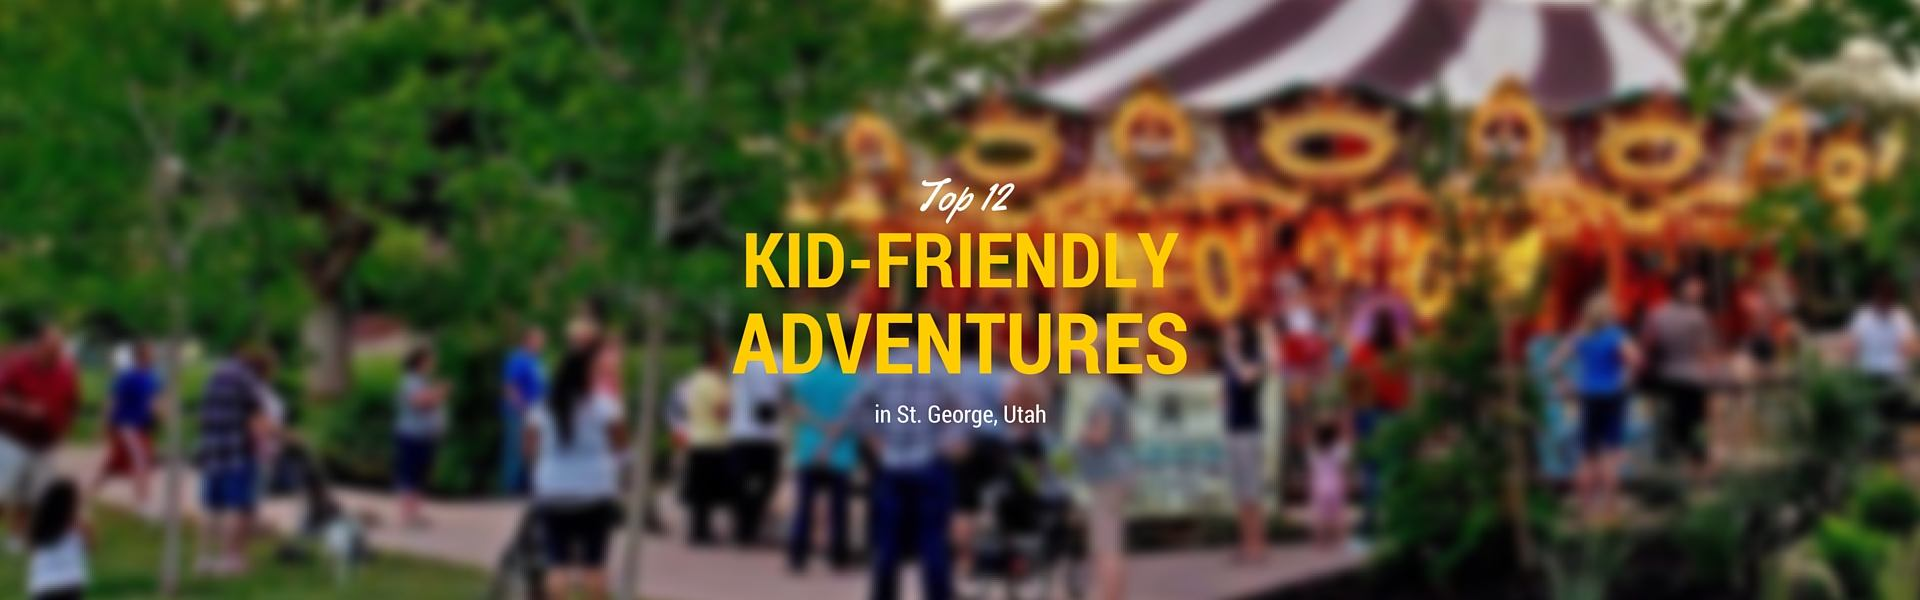 top 12 kid friendly things to go do in St. George, Utah